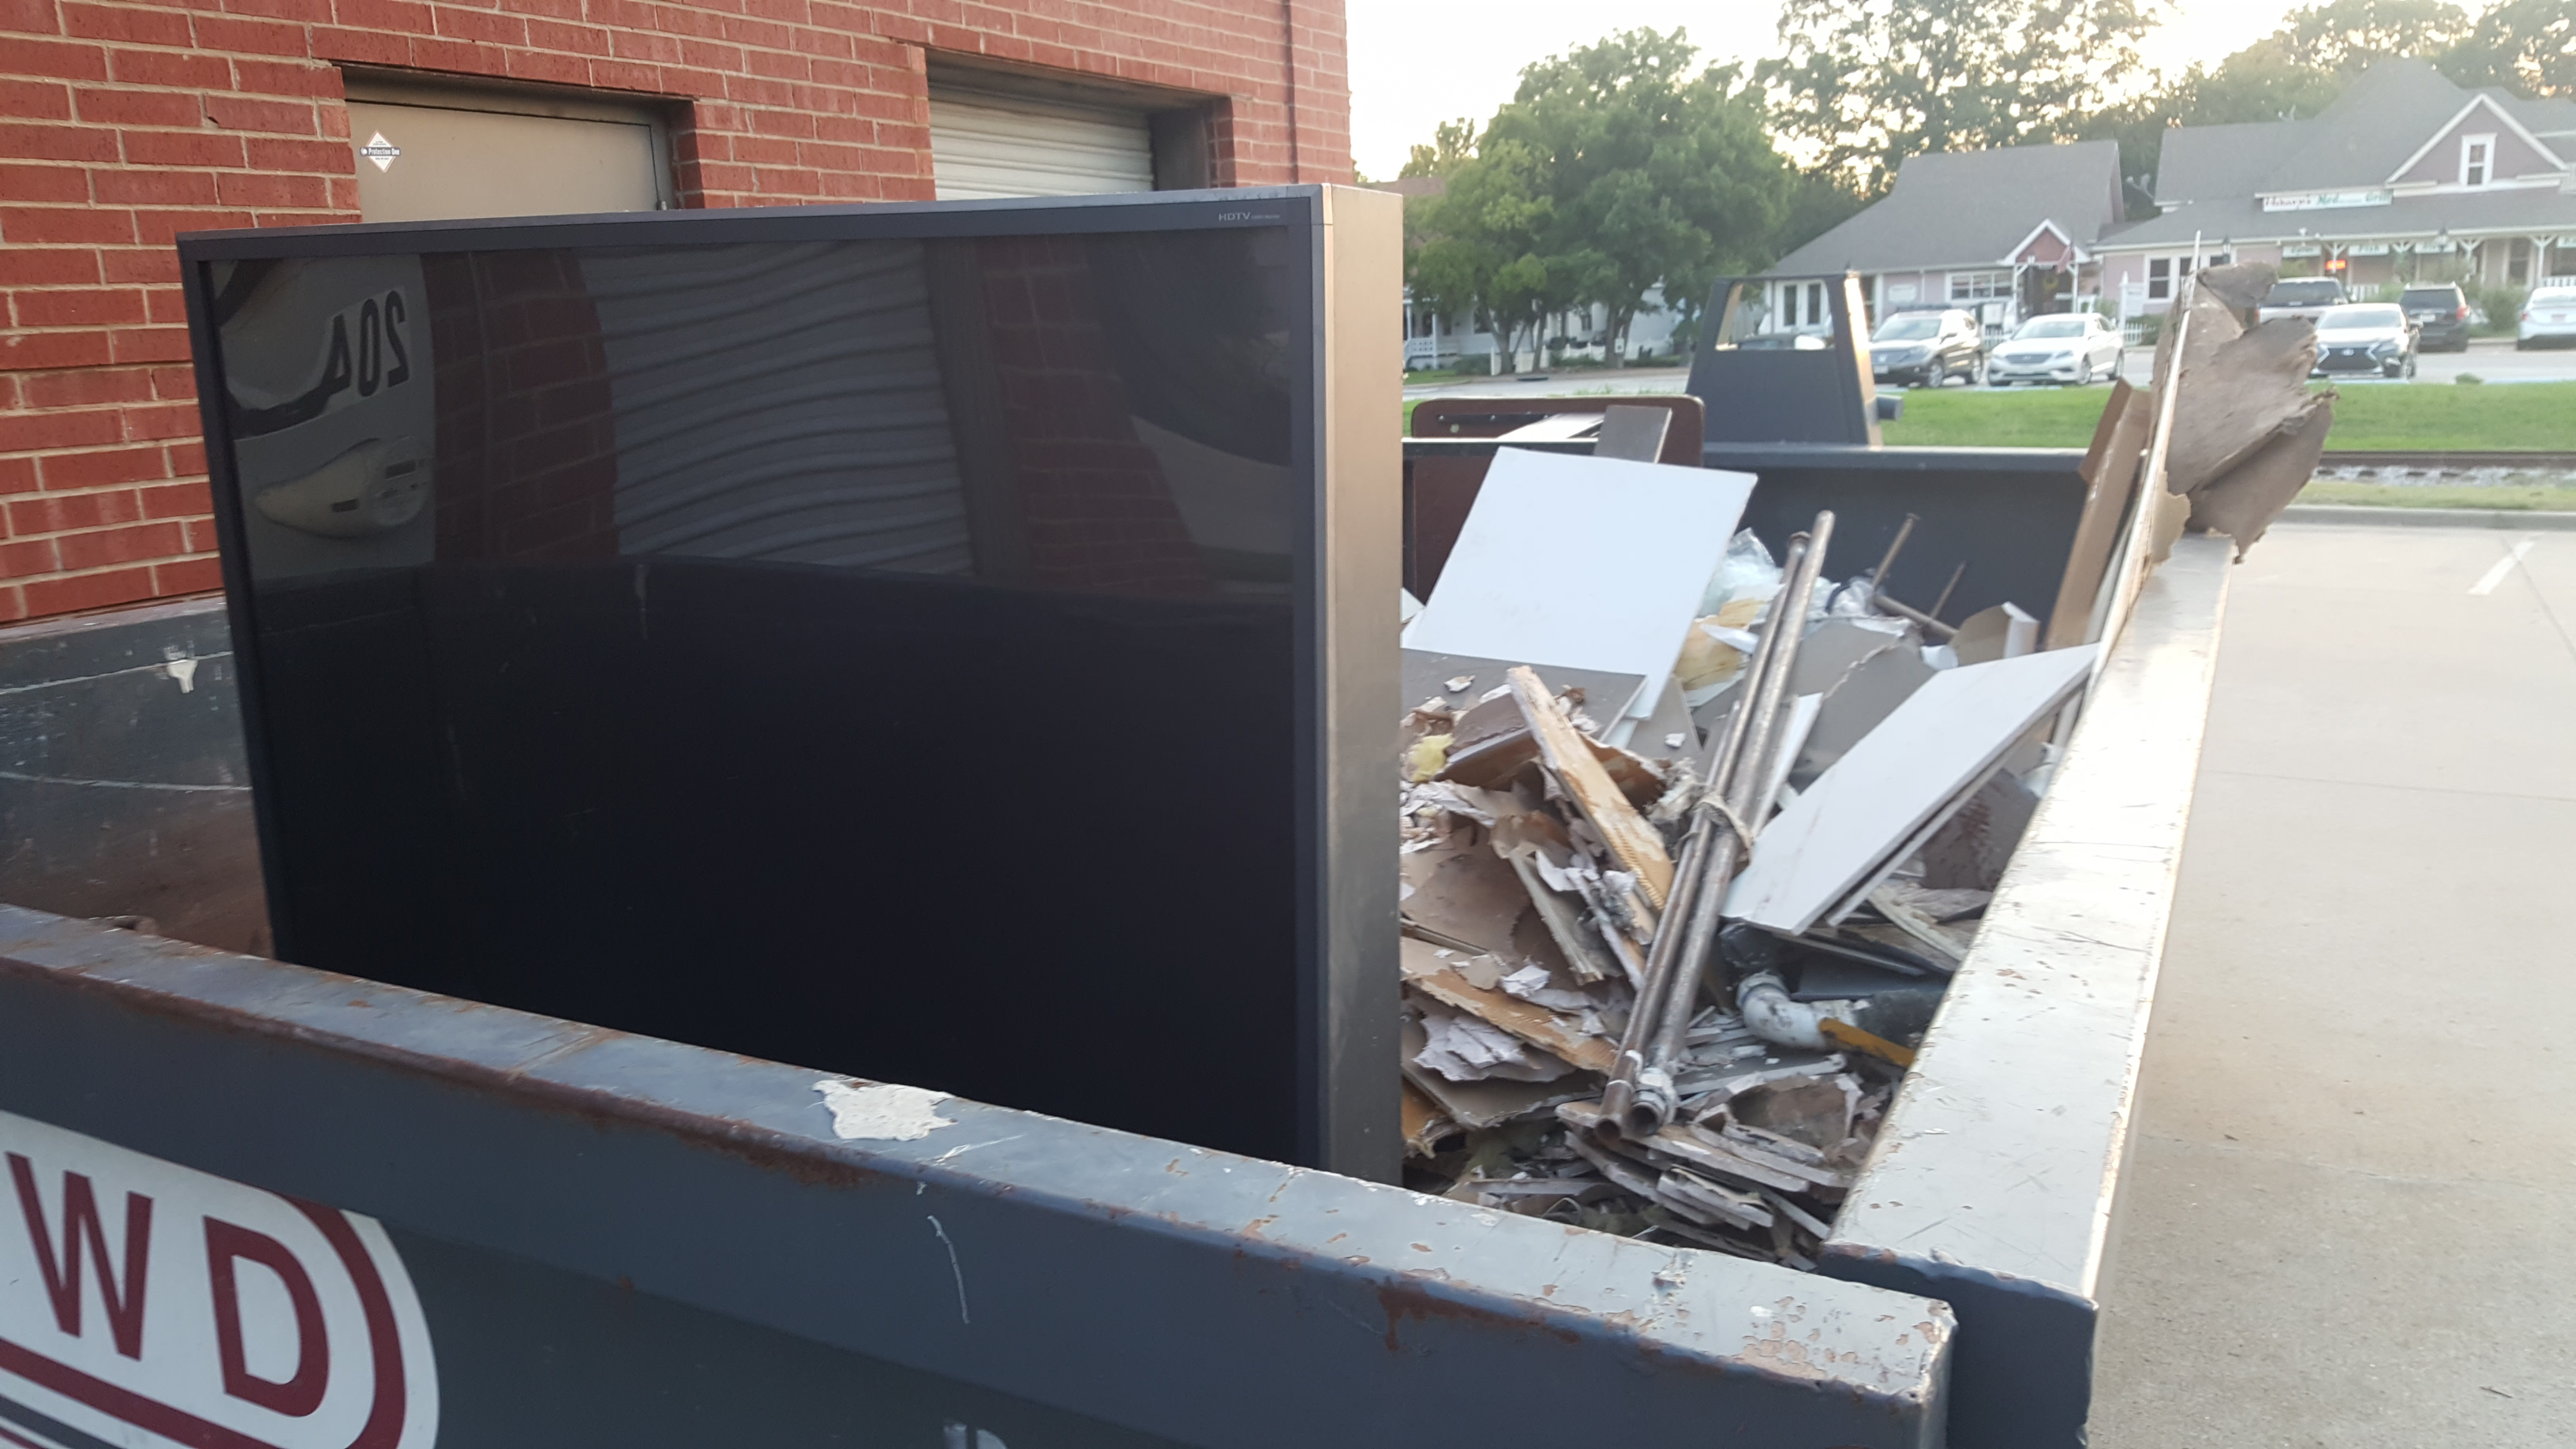 Large Flat Screen Tv In Trash Dumpster